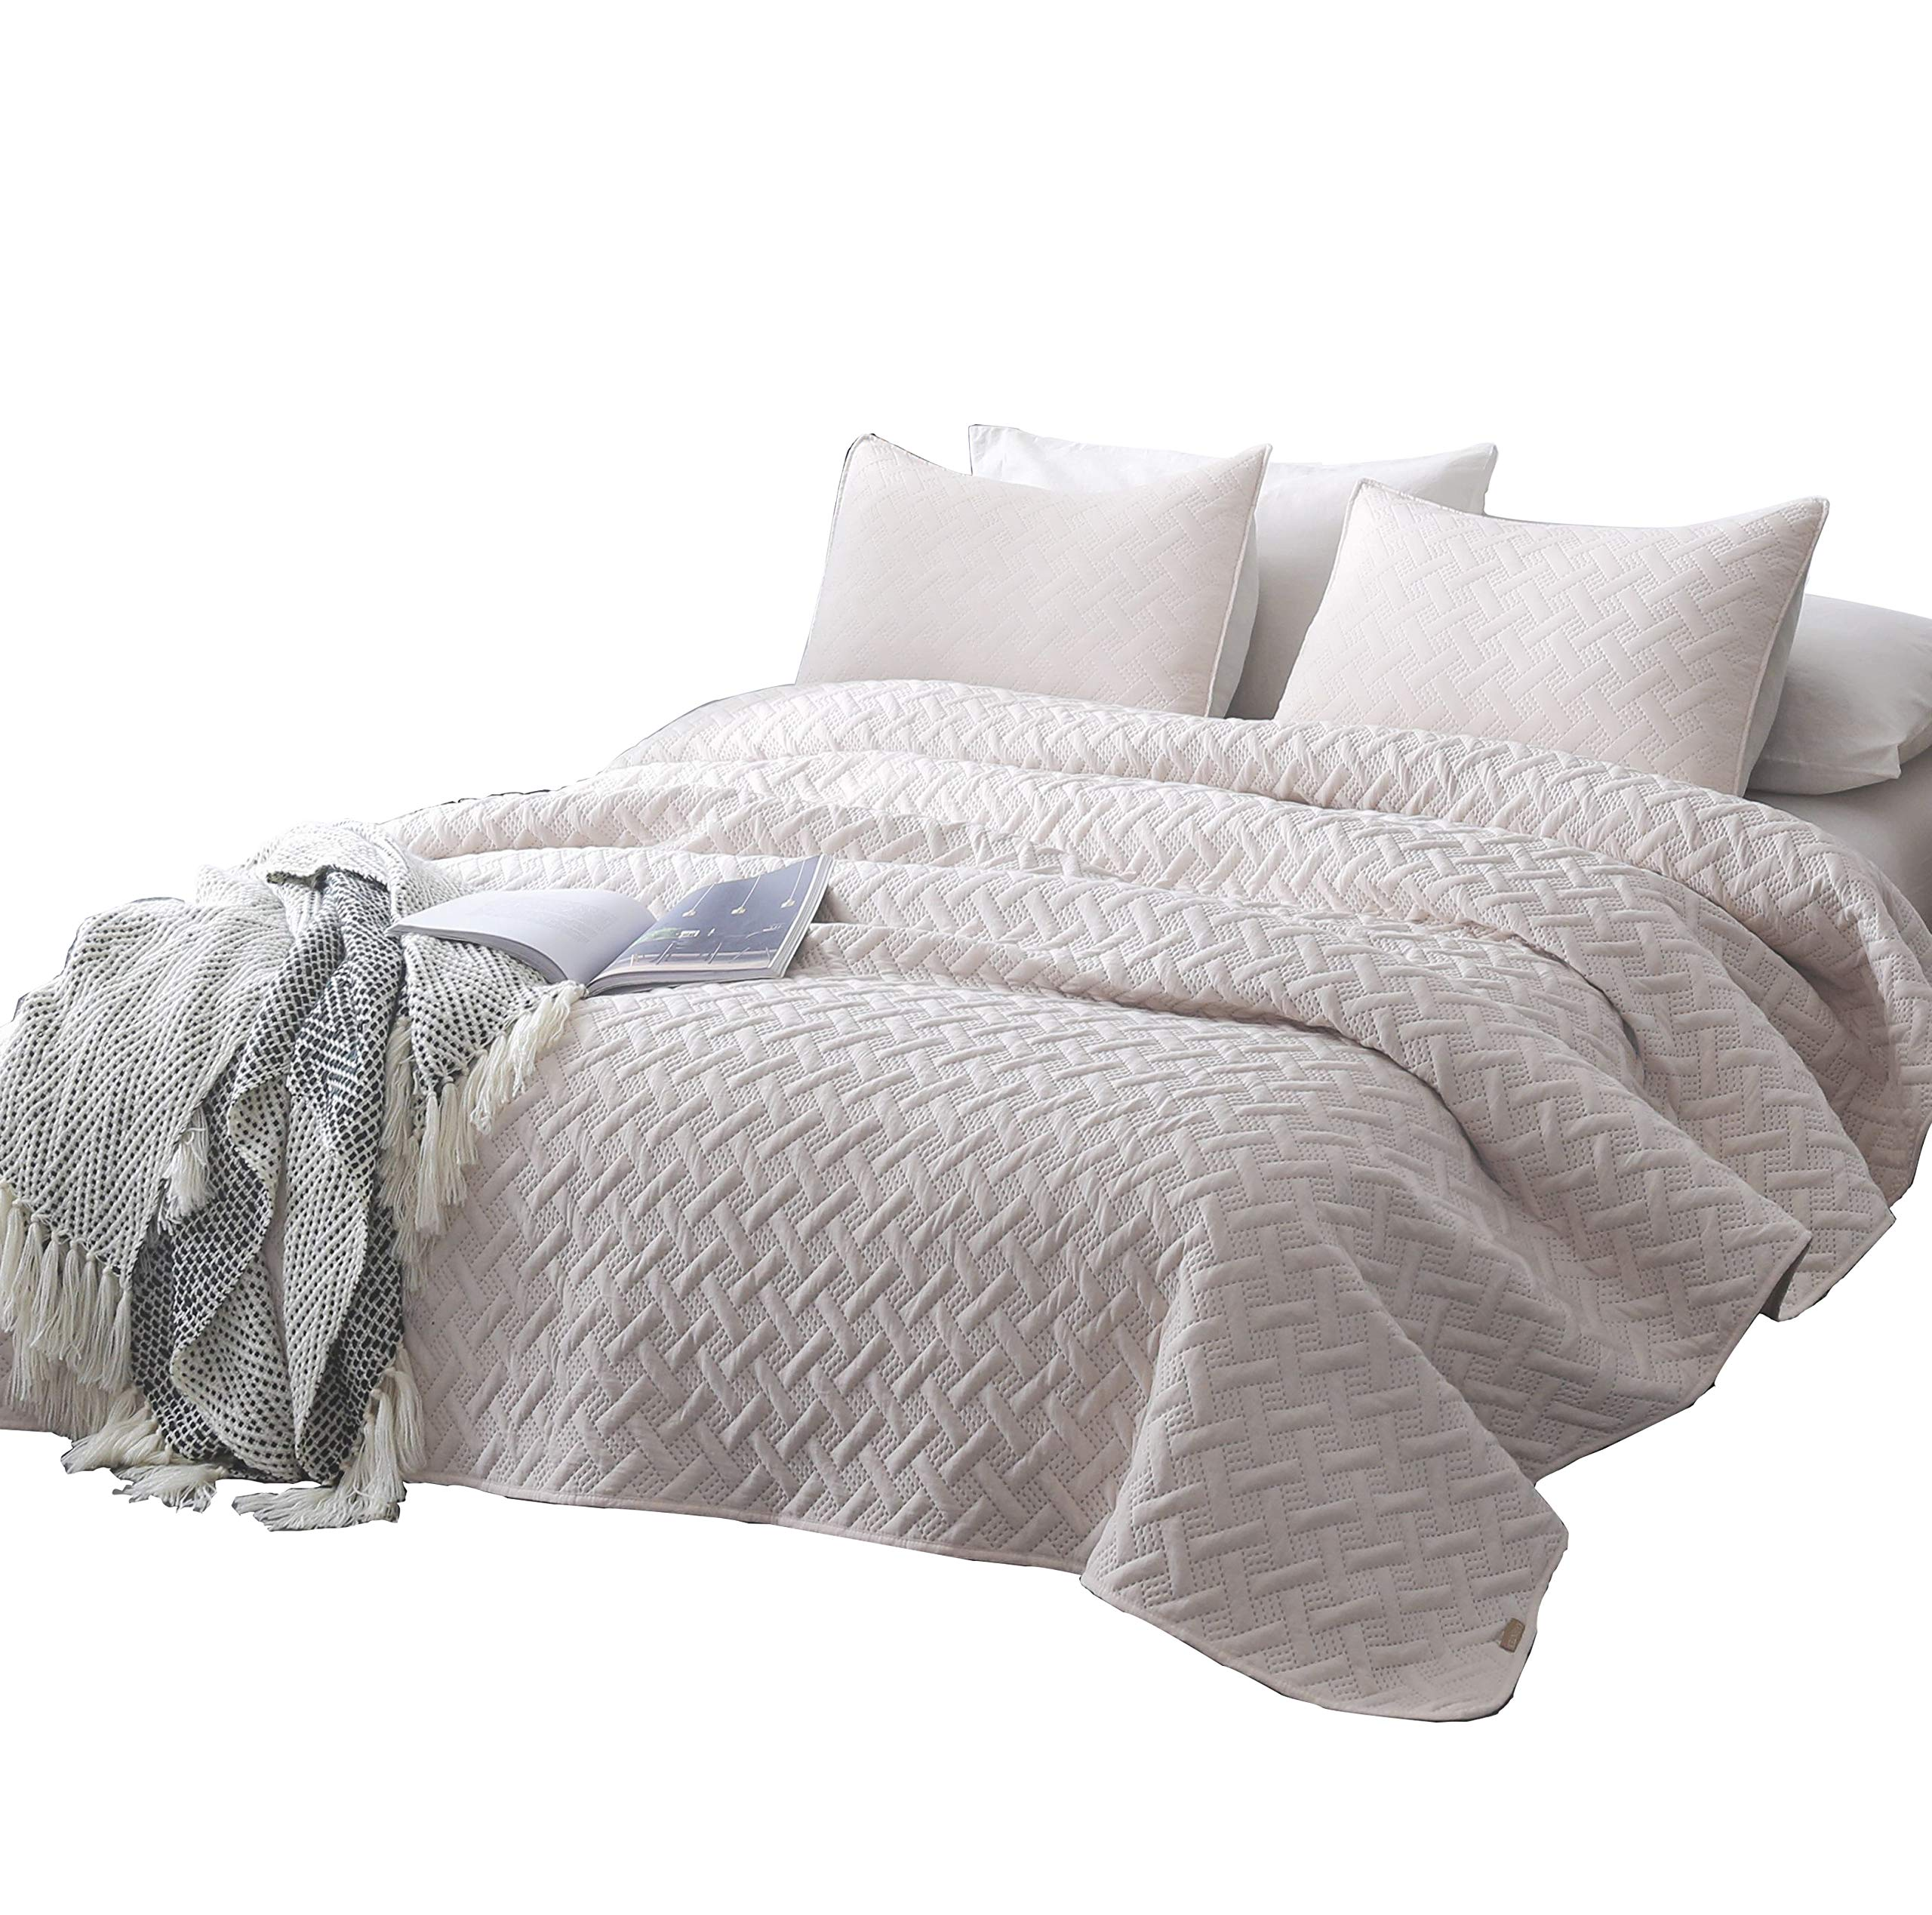 """DAWNDIOR Super Soft Quilt-Bedding-Coverlet-Sets,Queen Size with 2 Shams and 1 Lightweight Quilted Comforter with Solid Color - HIGH QUALITY- The quilt bedspread sets is Made with Top quality down alternative filling,Which Got the ECC Certification,Skin-Friendly and Breathable&Warm,The most important is Hydrophillic. SIZES AVAILABLE - We Have King Queen/Full Twin Size Quilt sets available.Single/Twin 68x86""""+20x26""""X2; Full/Queen 90x90""""+20x26""""x2; King 100x90""""+20x36""""x2 EASY CARE -Machine Washable with cold, gentle cycle. Tumble dry on low settings.Our quilt coverlets set is pre-washed and is extremely easy to care. - comforter-sets, bedroom-sheets-comforters, bedroom - 918uKOXLOVL -"""